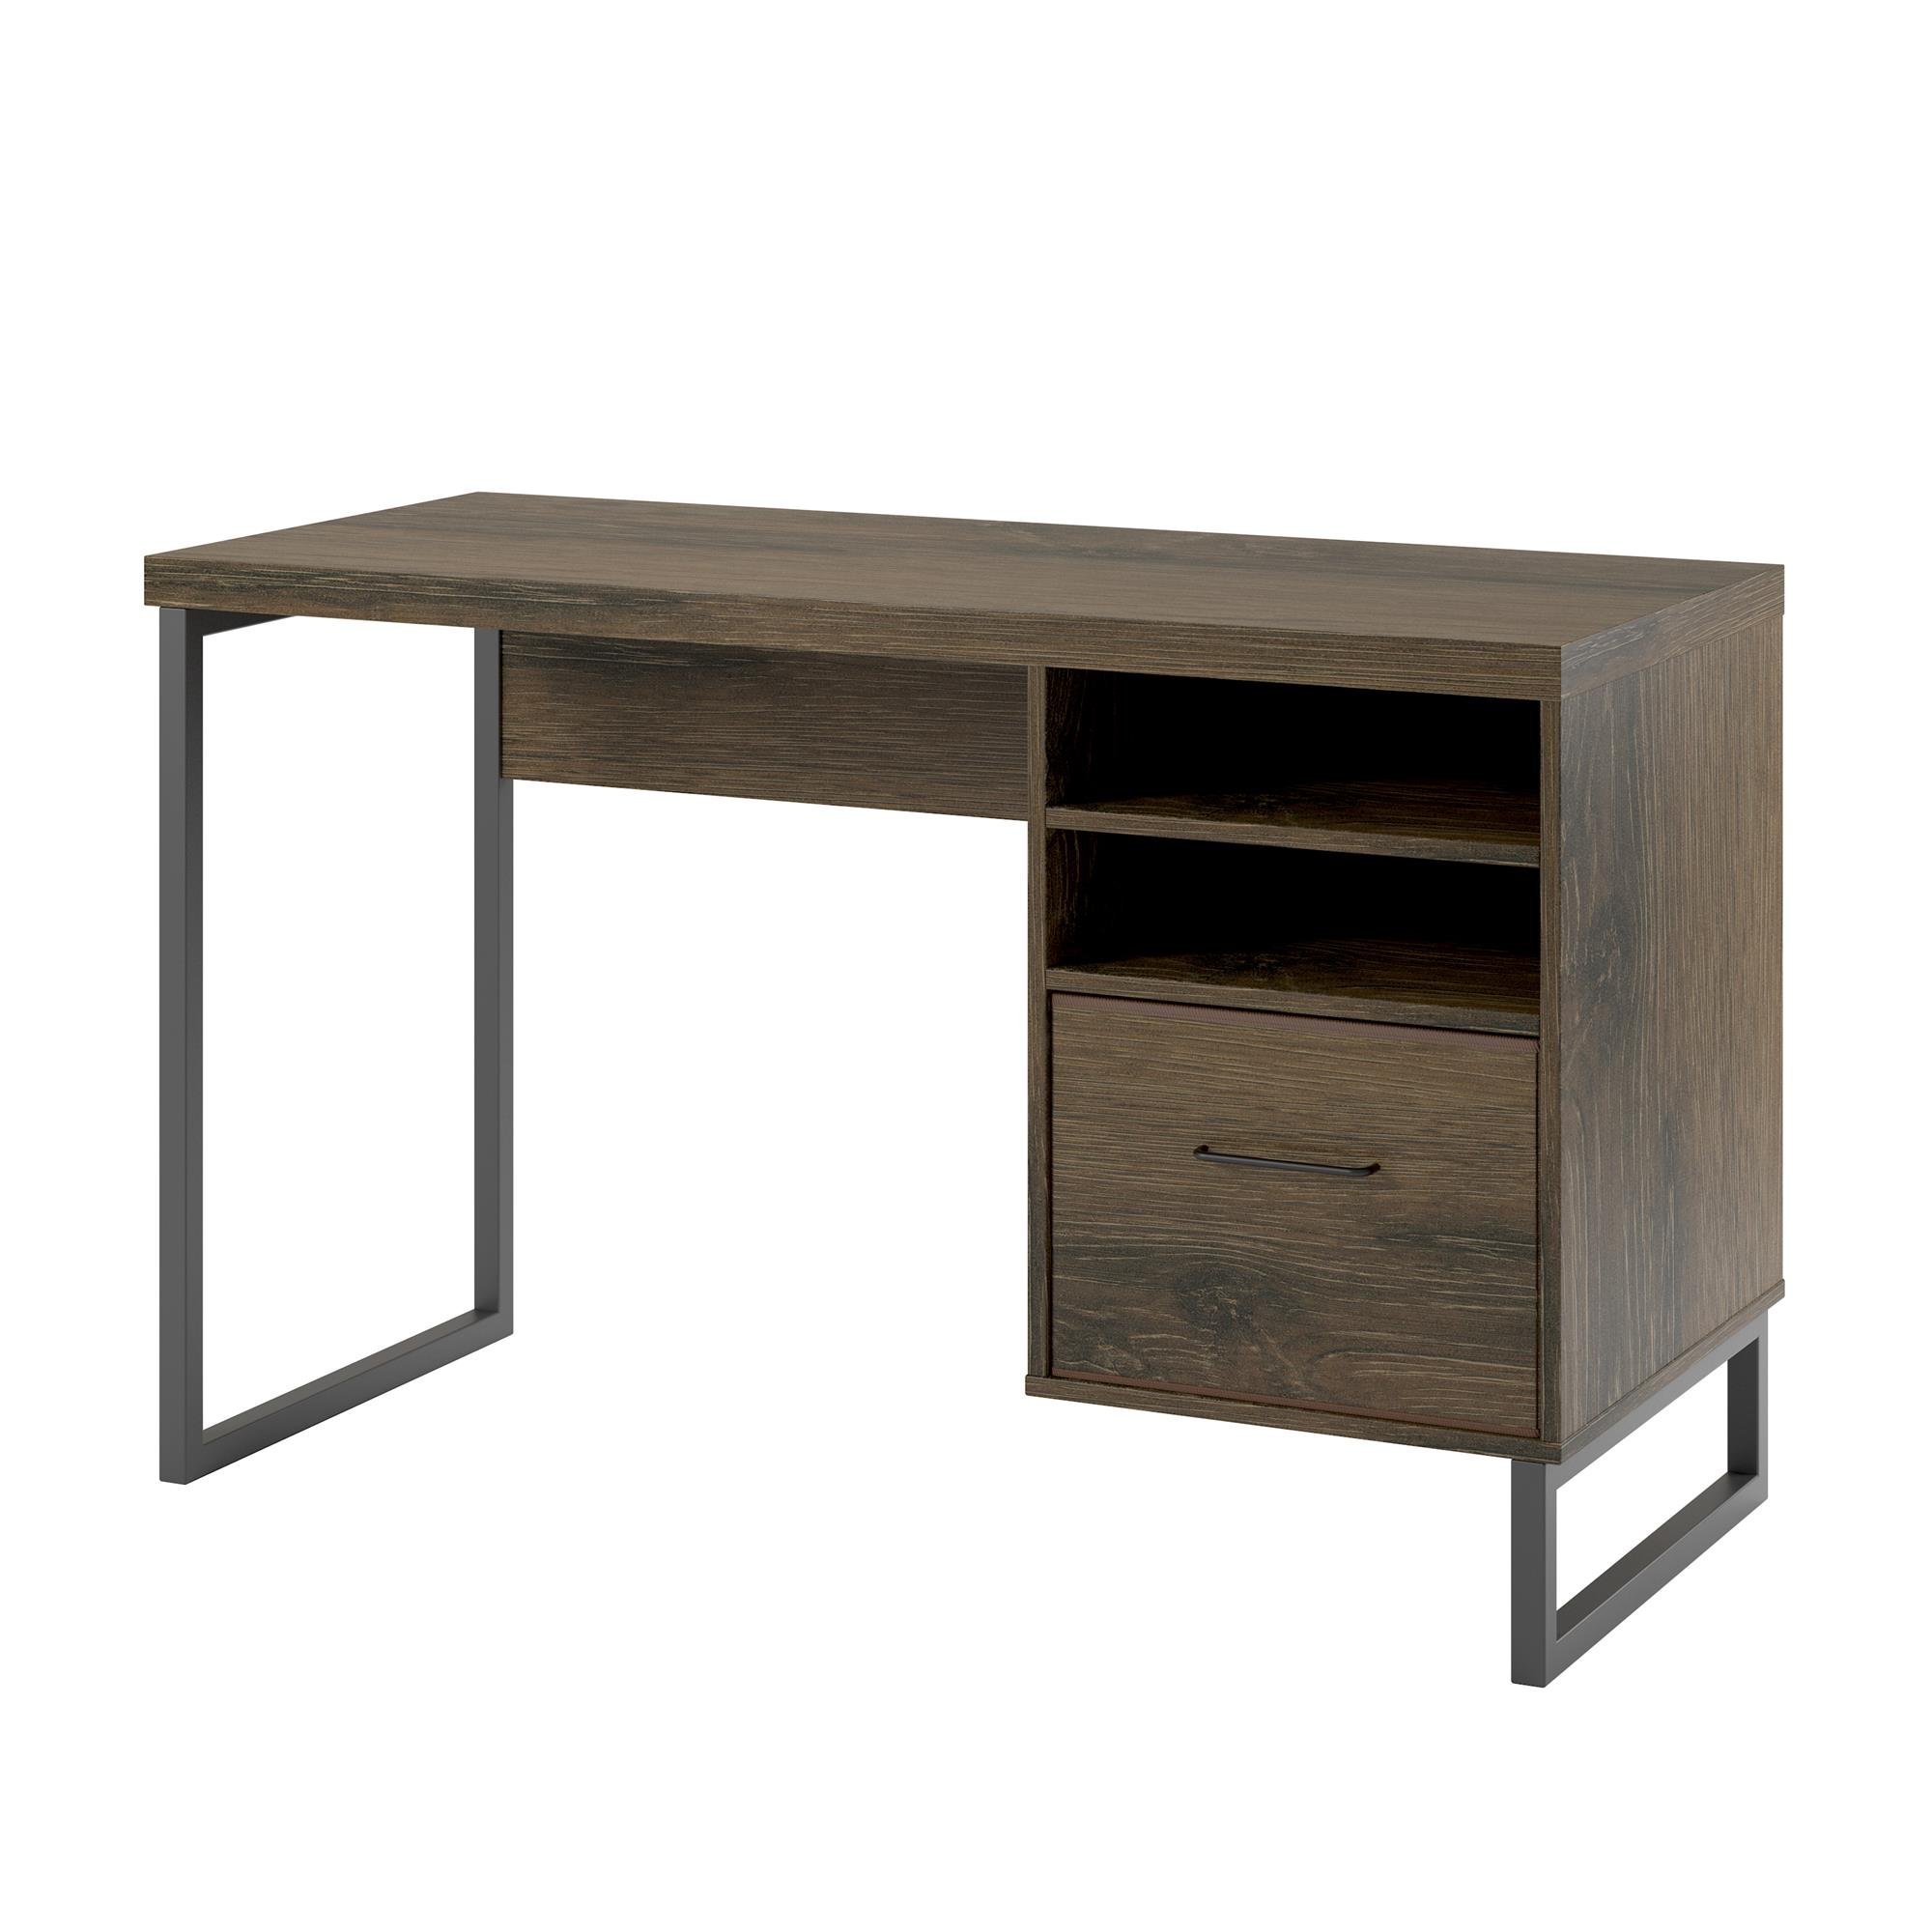 Ameriwood Home 9892096COM Candon Desk, Distressed Brown Oak